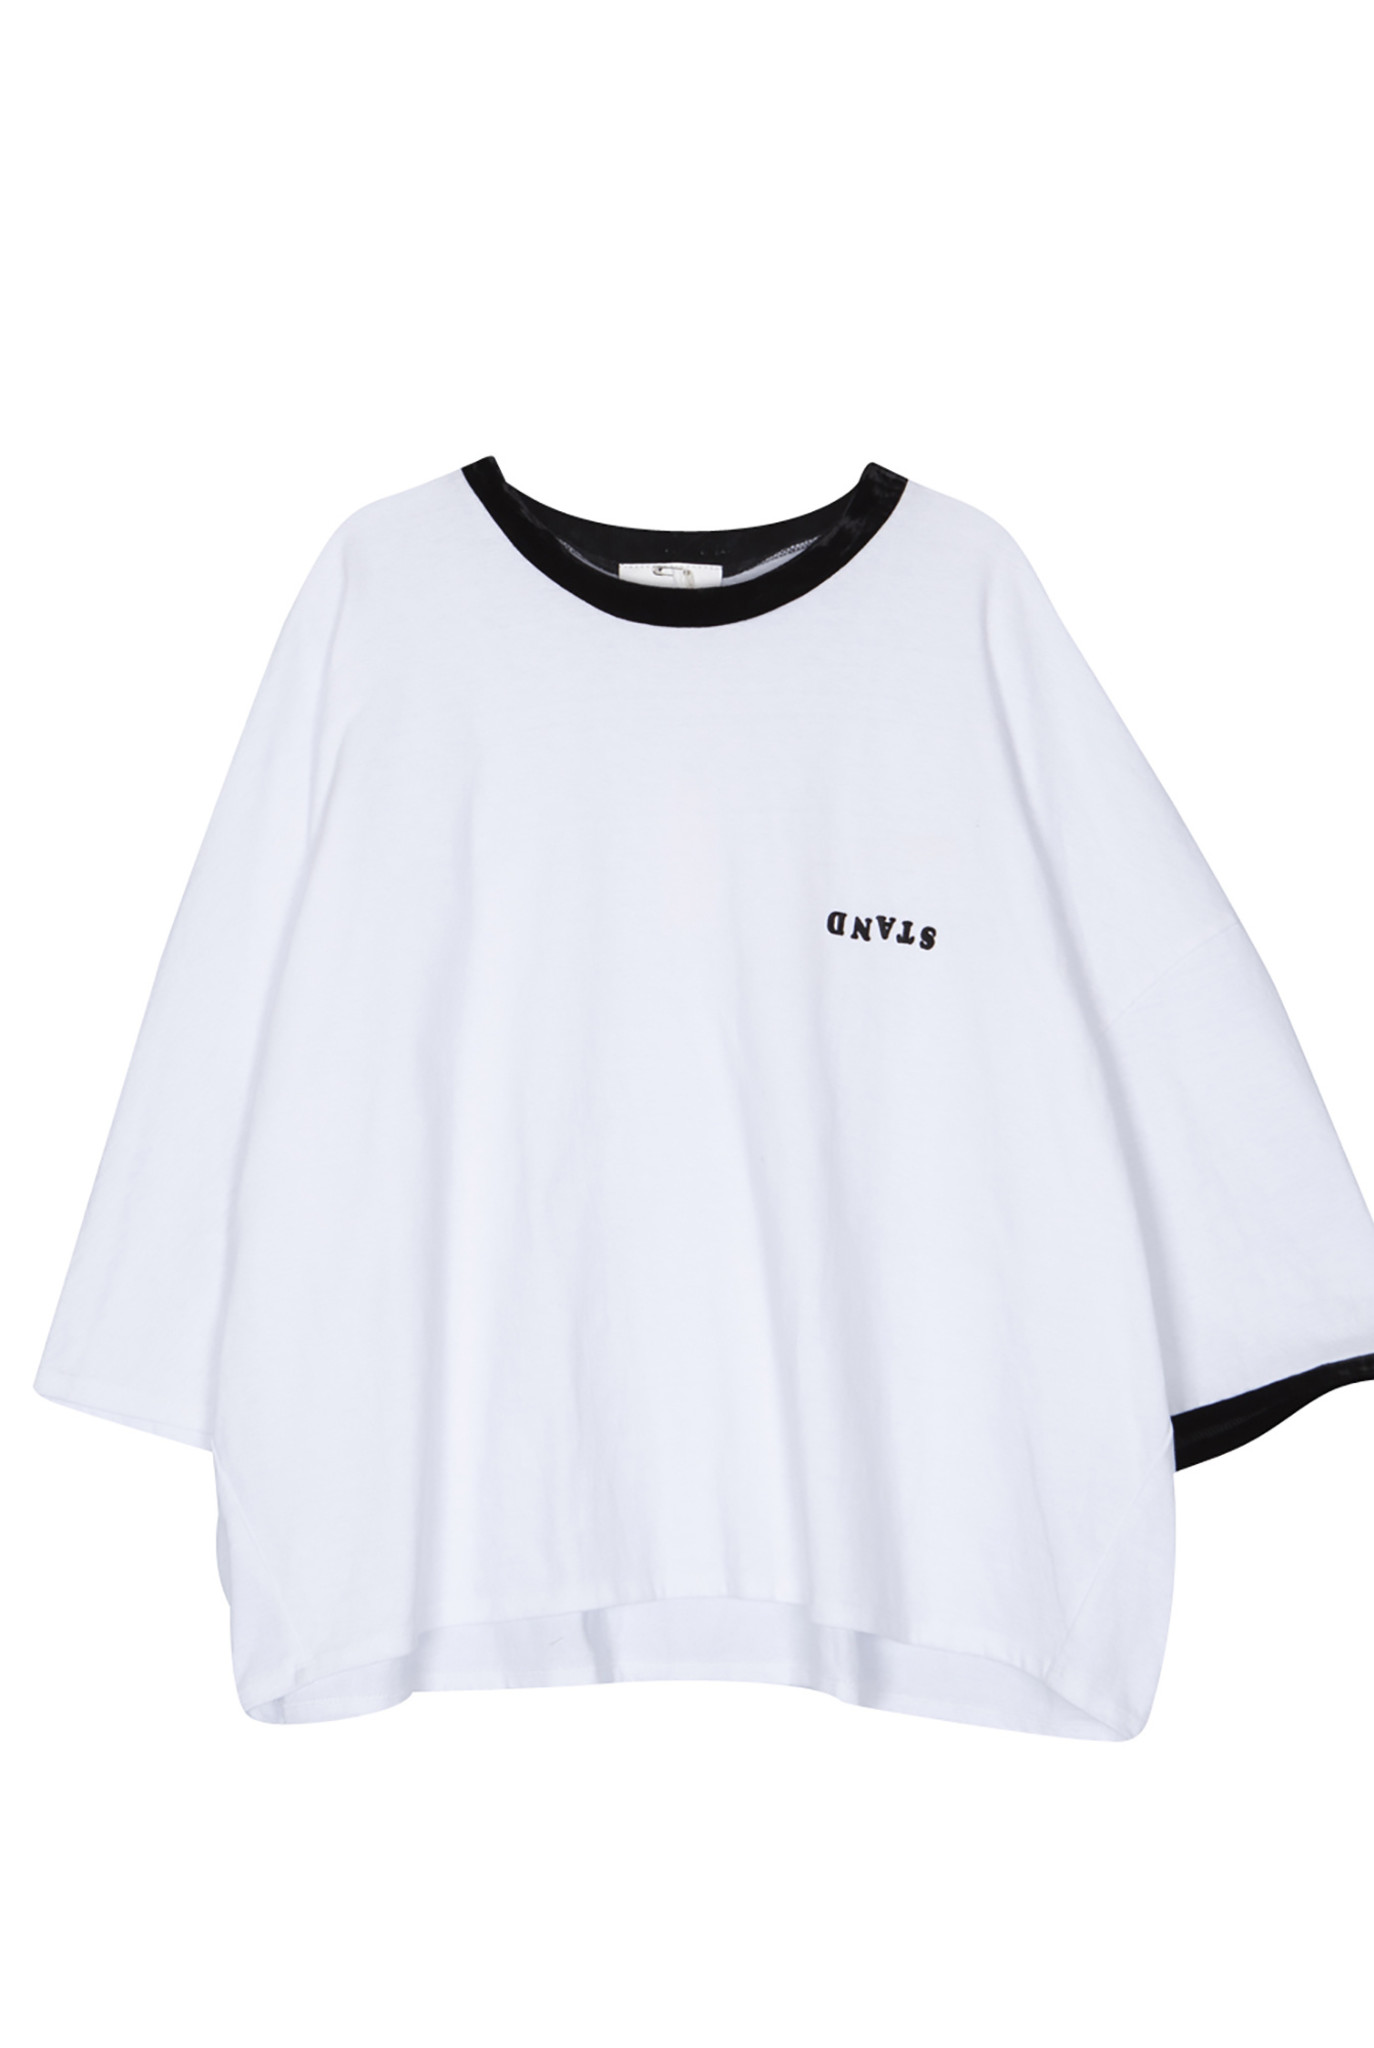 Rayon collar t-shirt white